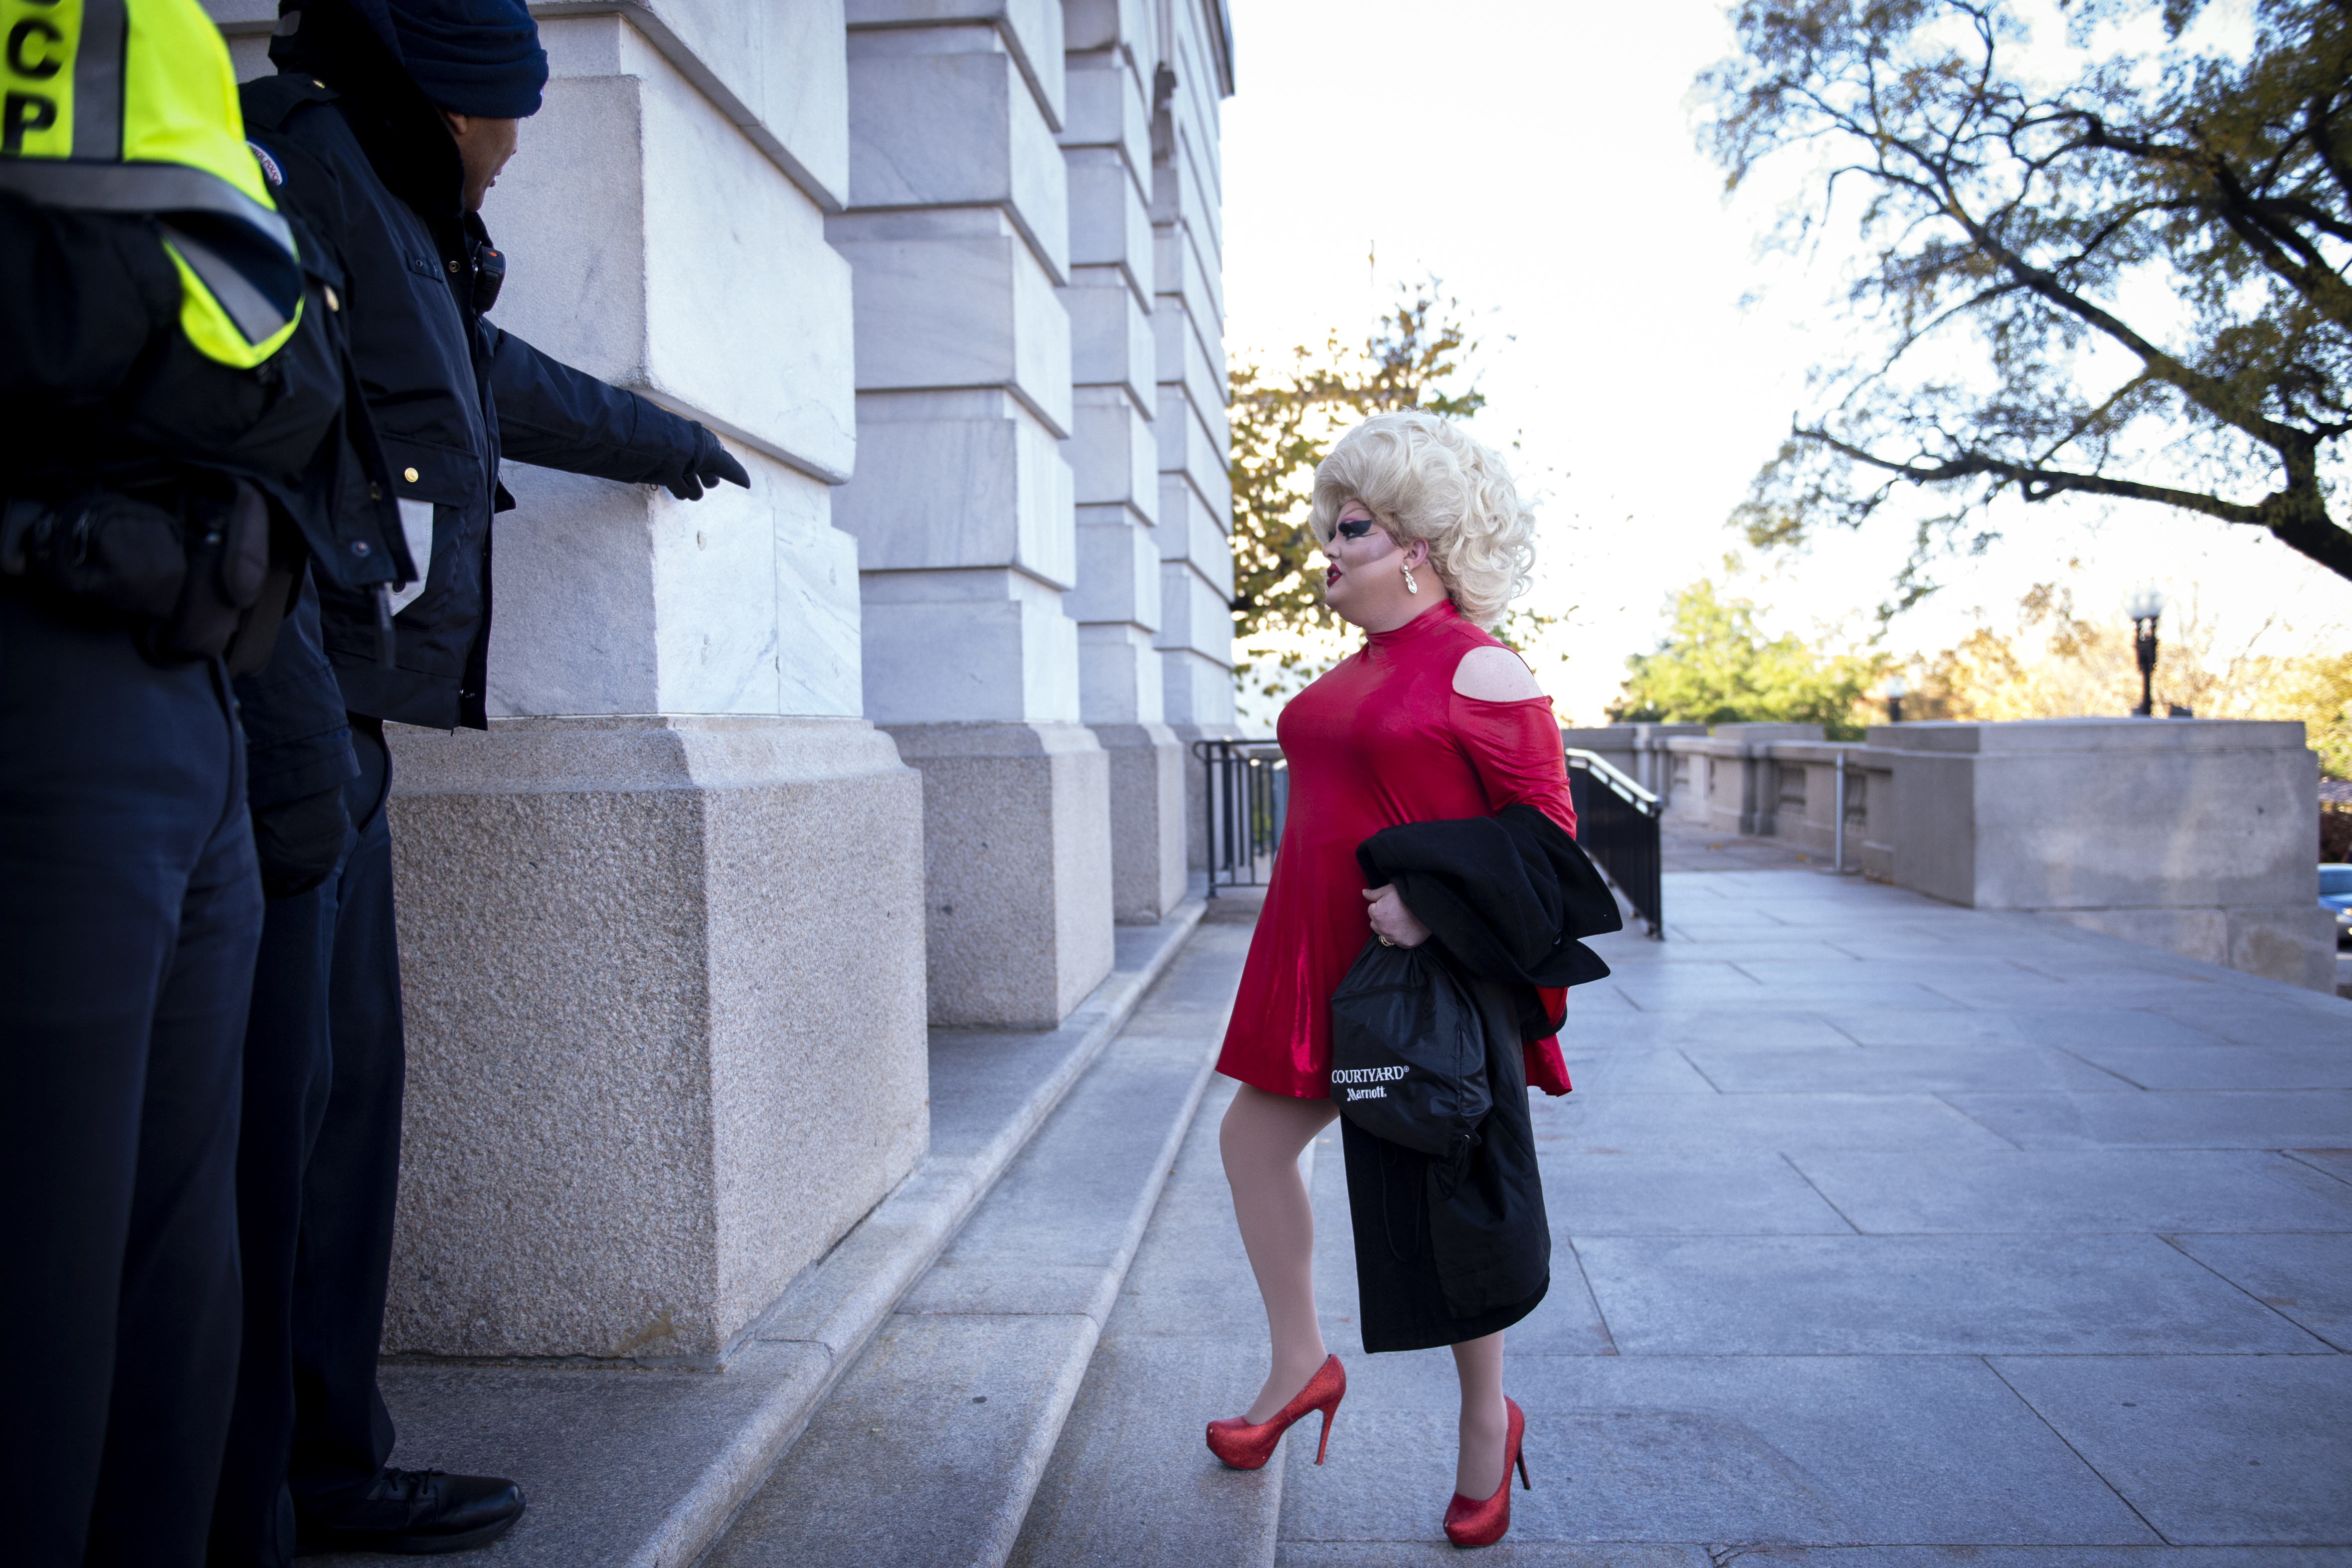 UNITED STATES - NOVEMBER 13: A person dressed in drag arrives for the House Intelligence Committee hearing on the impeachment inquiry of President Trump outside of the Longworth Building on Wednesday Nov. 13, 2019. (Photo by Caroline Brehman/CQ Roll Call)